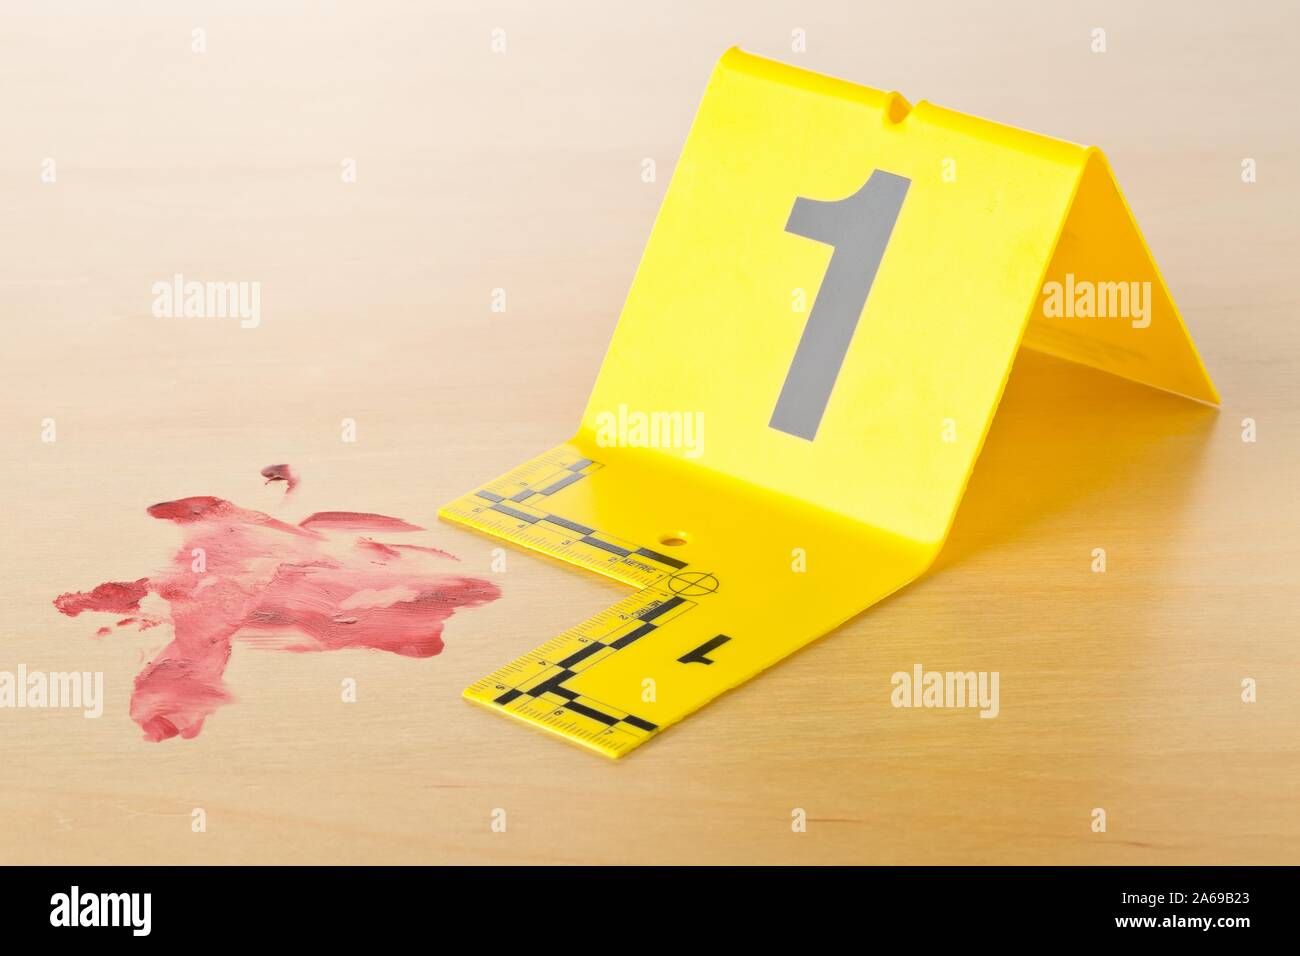 Crime Scene Investigation Csi Evidence Marker With Blood Spot On Wooden Floor Background At Crime Scene Police Evidence Or Forensic Investigation C Stock Photo Alamy